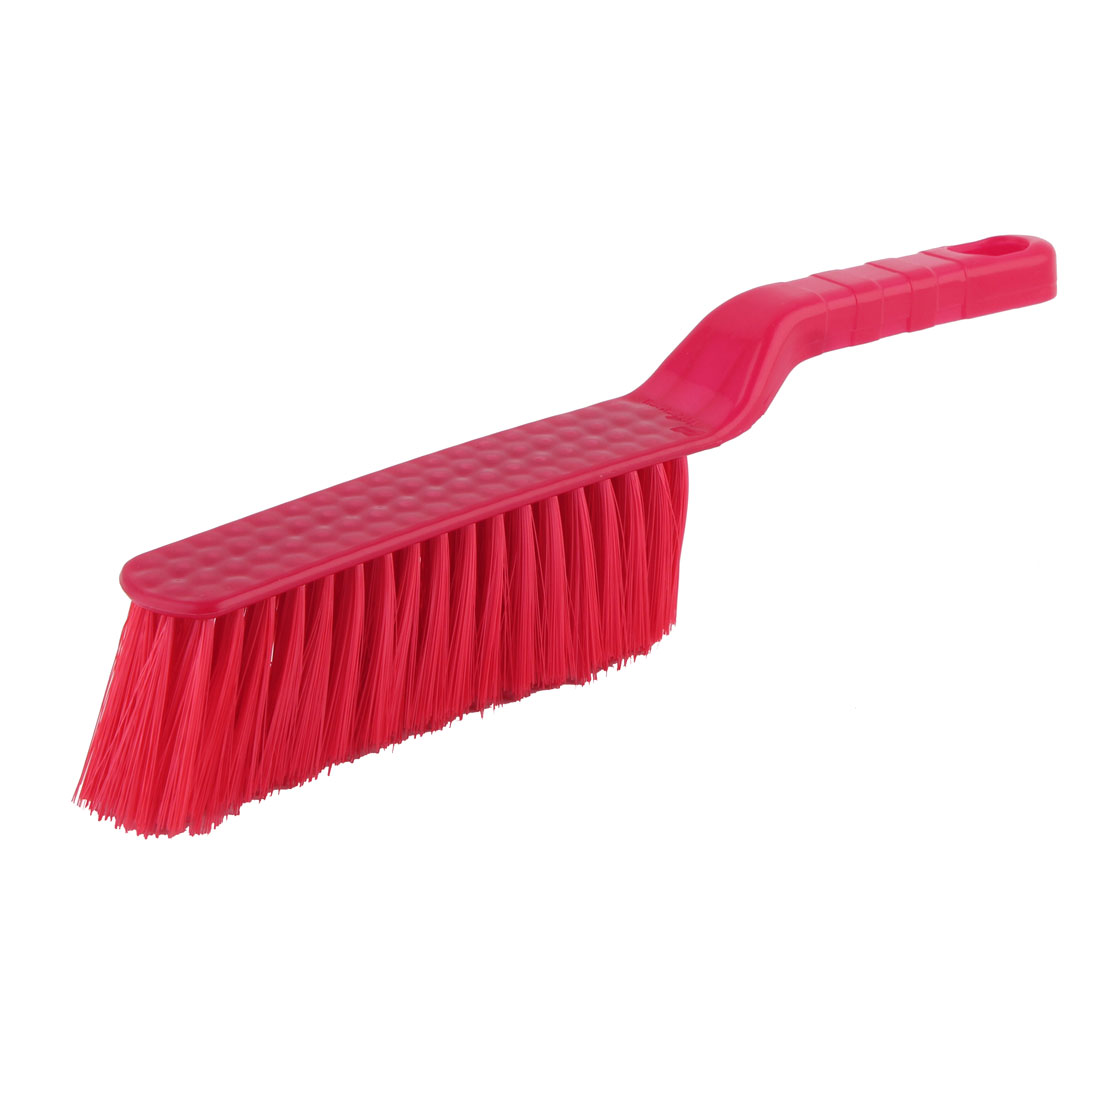 Household Plastic Laundry Nonslip Clothes Scrub Sweeper Handle Cleaning Brush